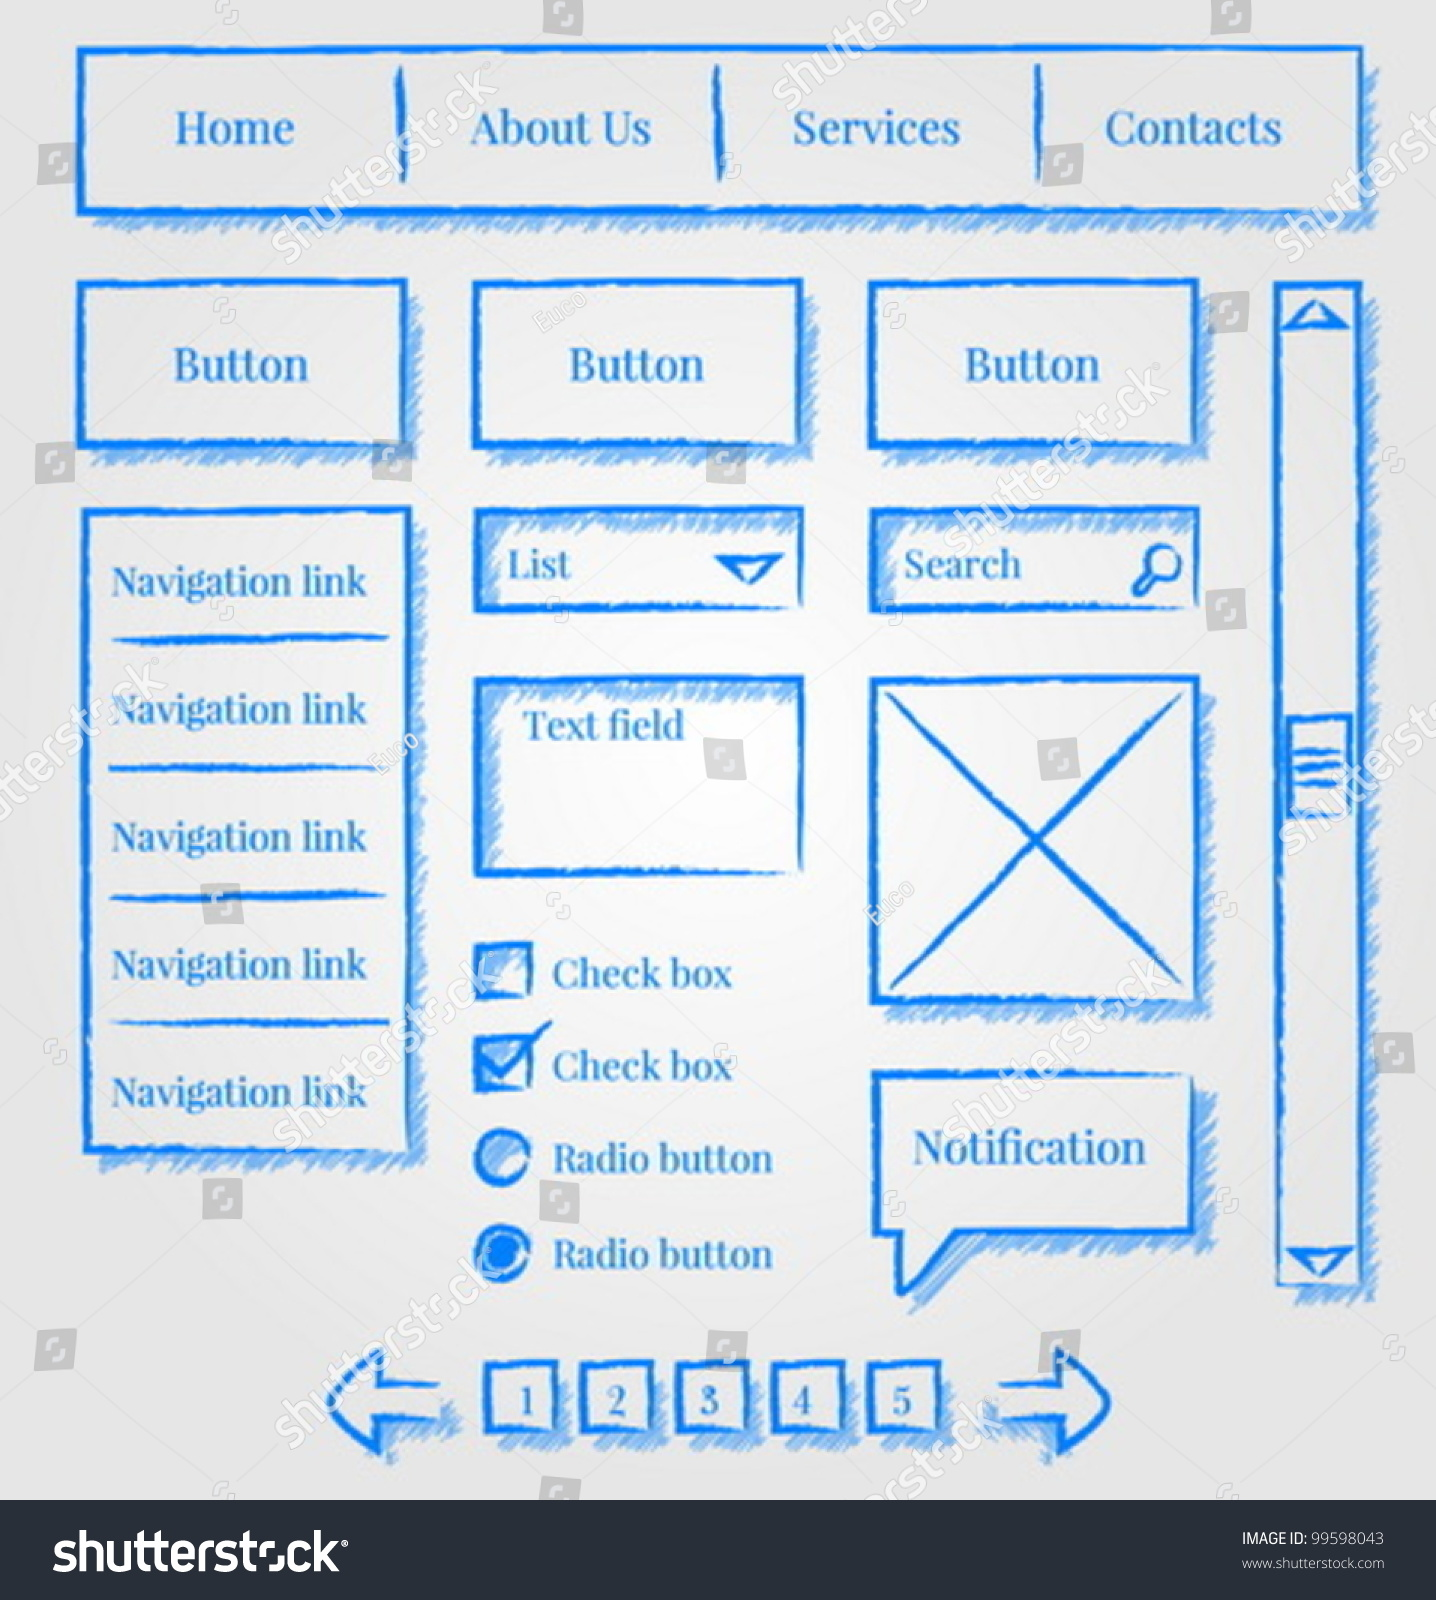 Website Wireframes Template Design Sketch Style Stock Vector ...